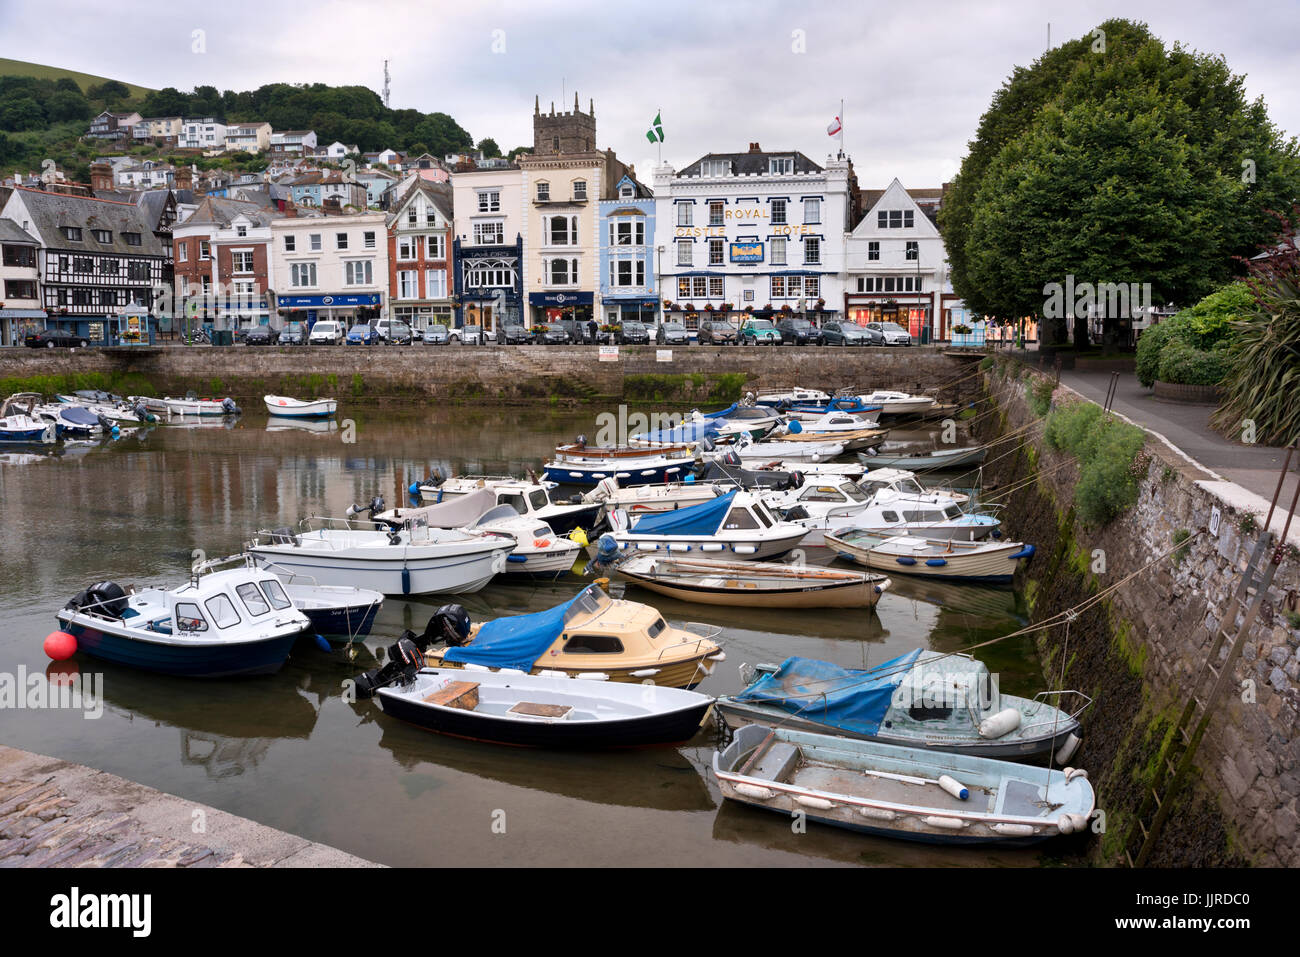 Old harbour, The Quay, Dartmouth, Devon, UK Stock Photo